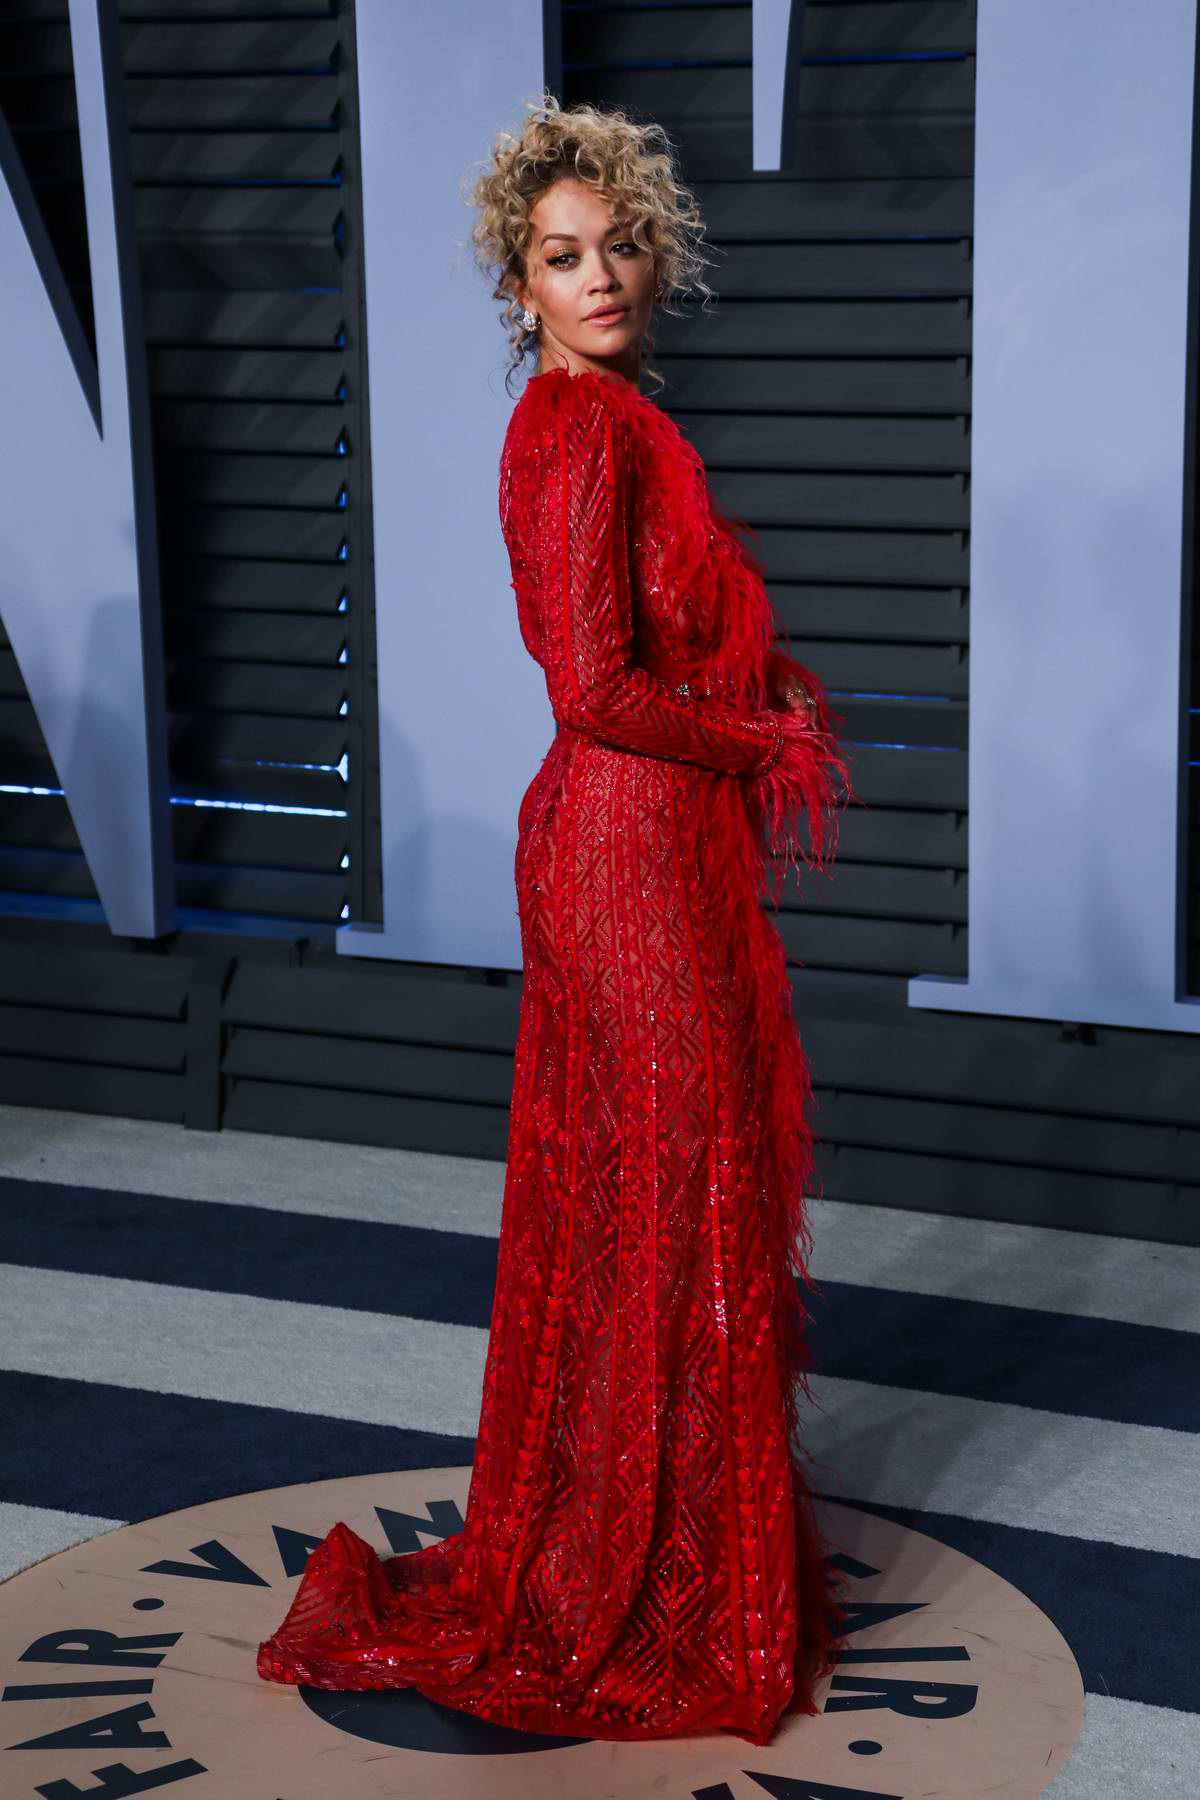 Rita Ora attends 2018 Vanity Fair Oscar Party at the Wallis Annenberg Center for the Performing Arts in Beverly Hills, Los Angeles